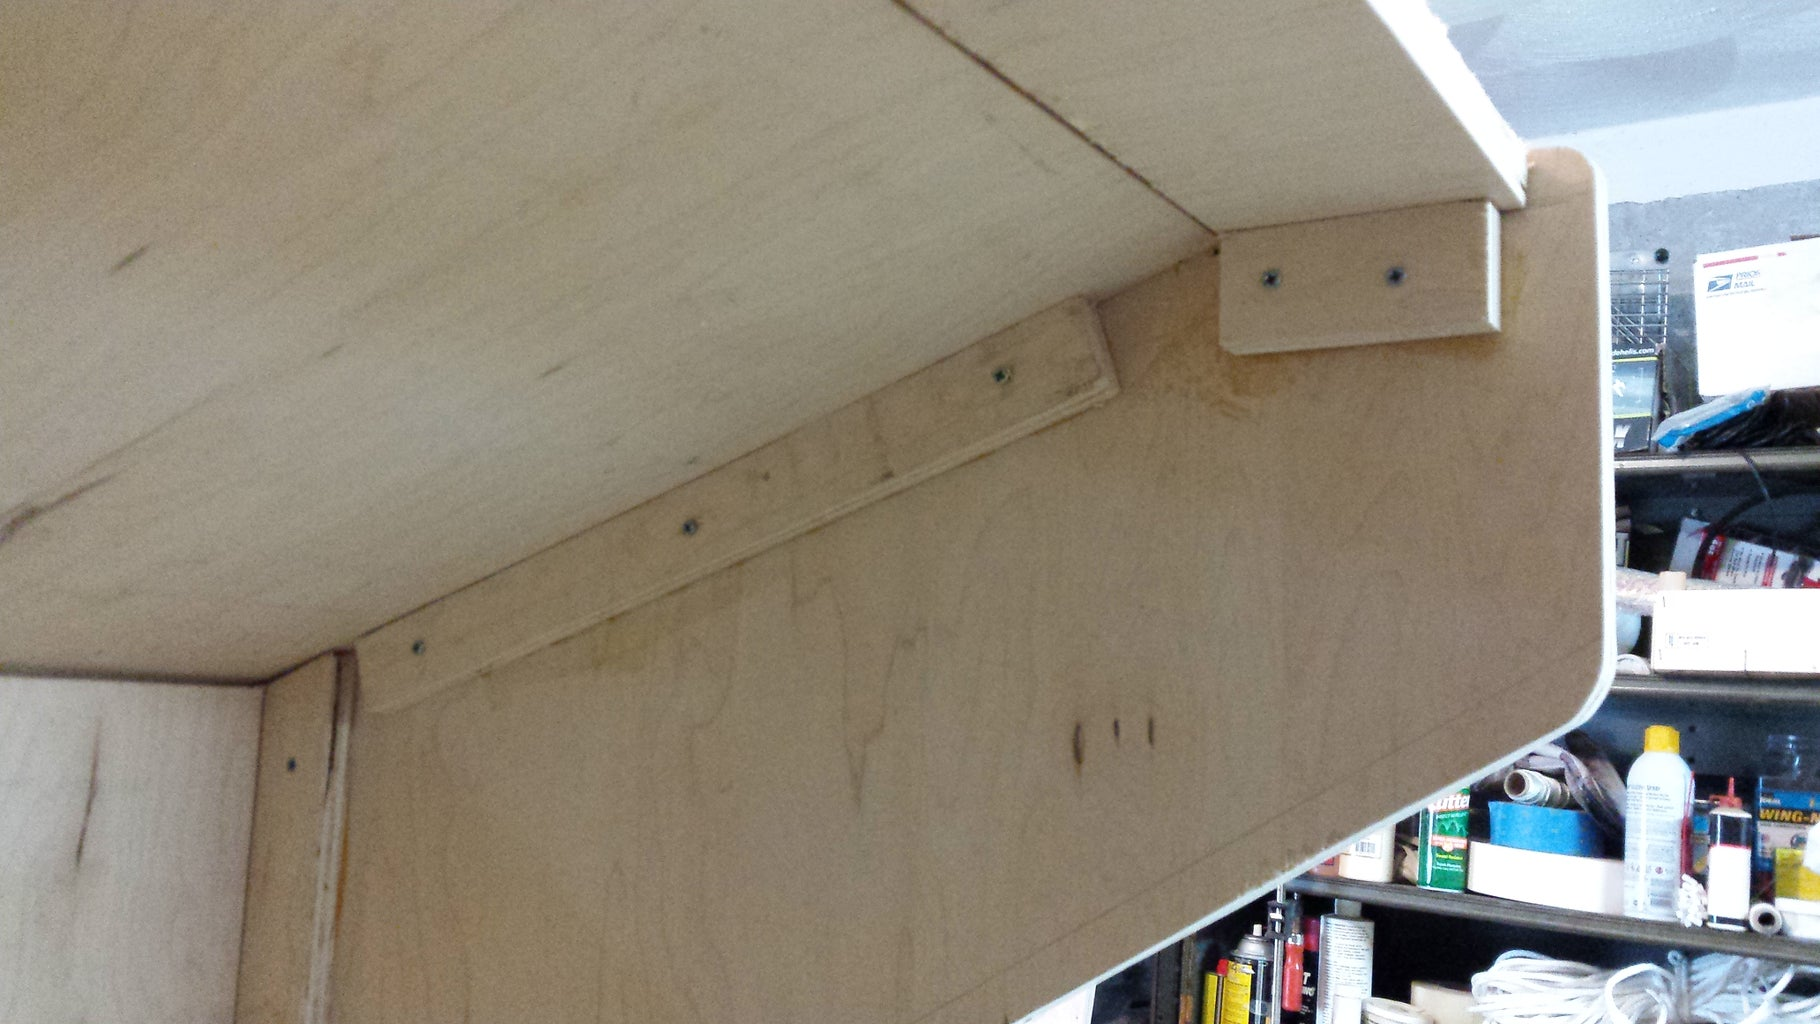 Add Plywood Strips to Edges to Hold It All Together.